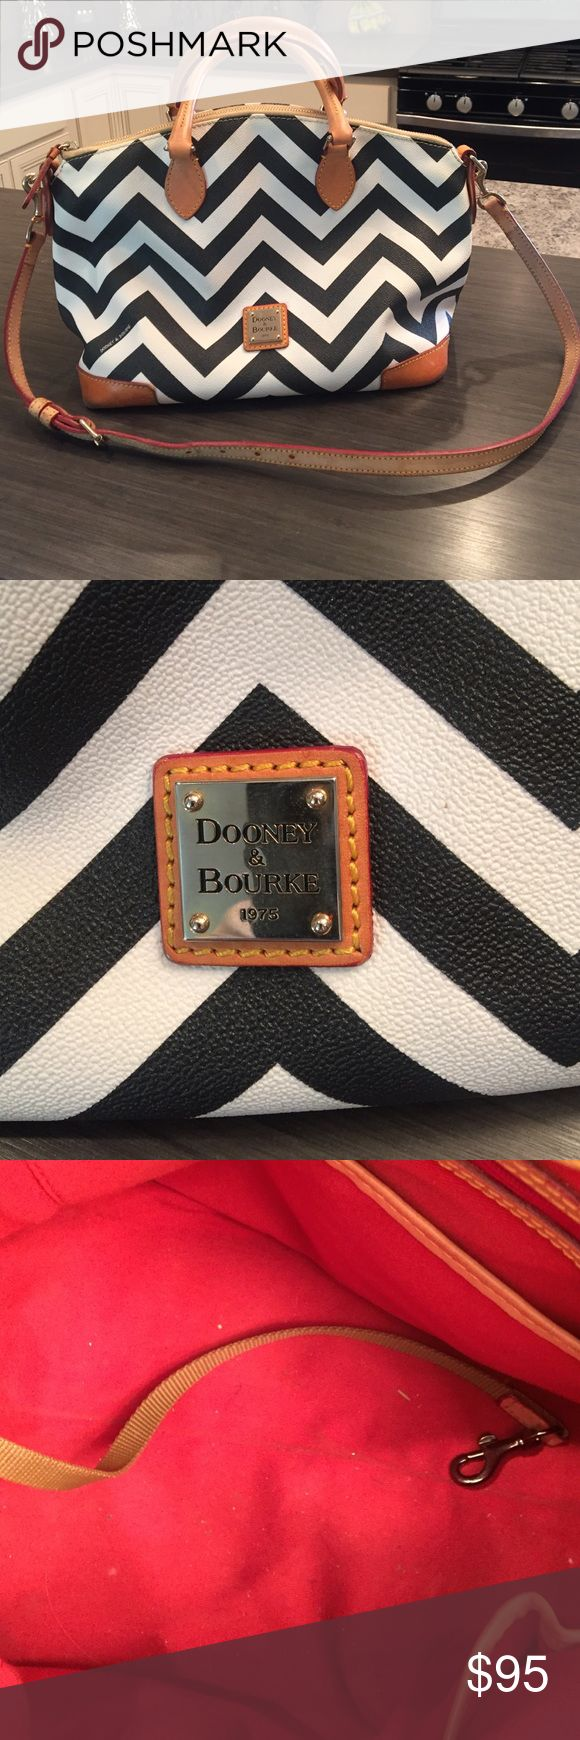 Dooney & Bourke handbag in black and white chevron Black and white chevron with tan leather trimming.  Some wear on corners and pen marks on inside.  In great shape and really cute!  Just have way to many bags. Dooney & Bourke Bags Satchels